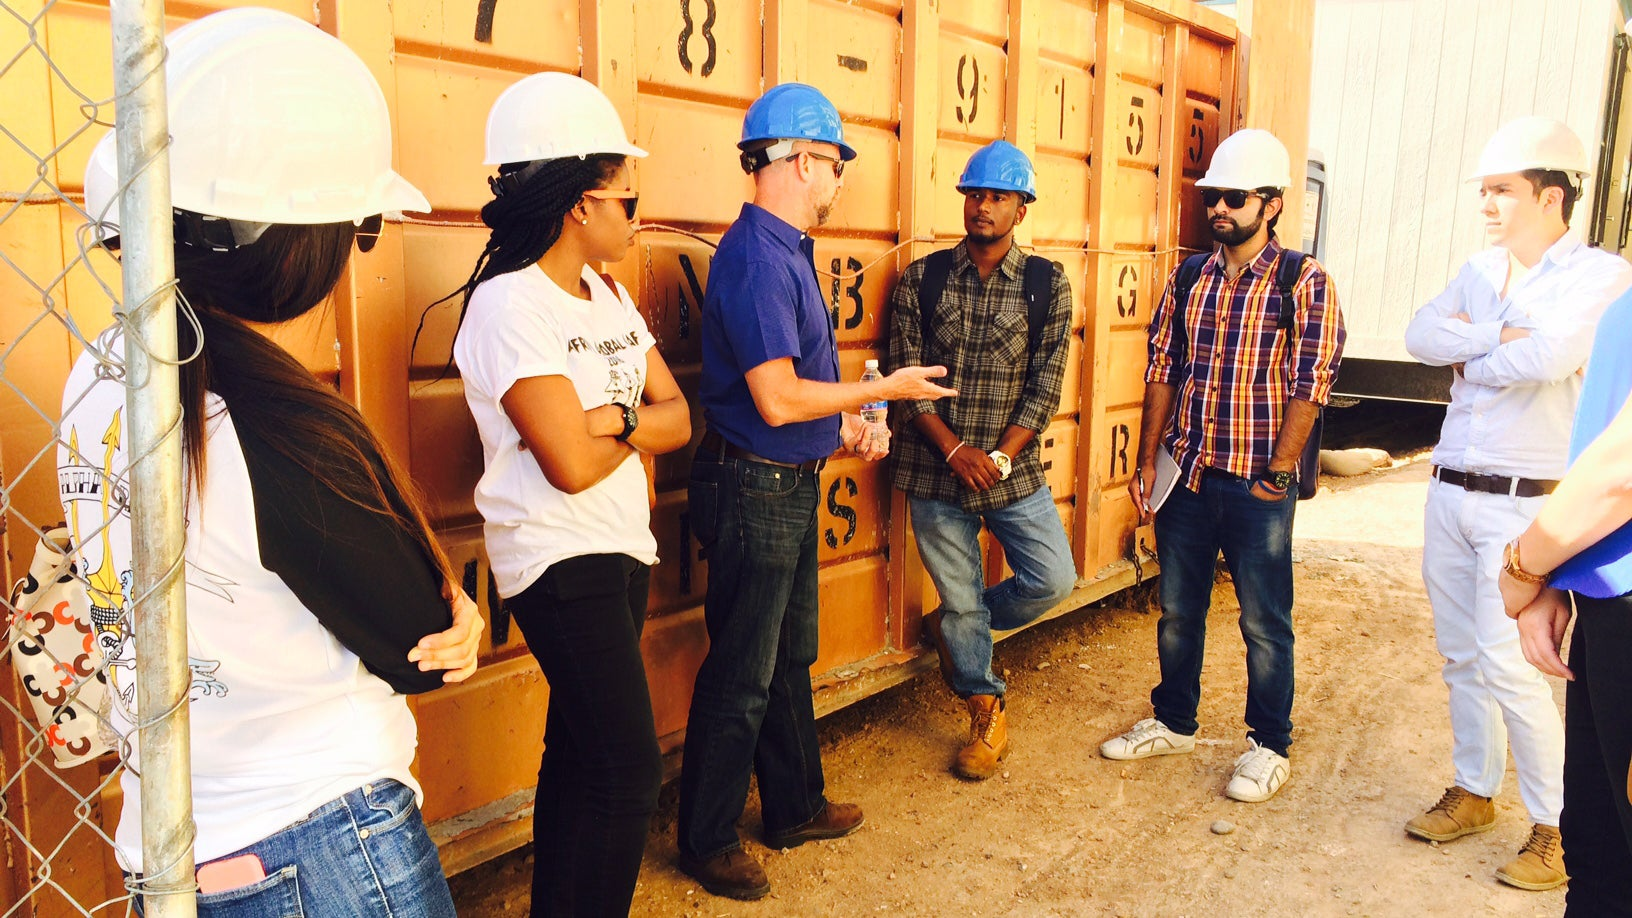 A group of students listens to an industry professional at a construction site